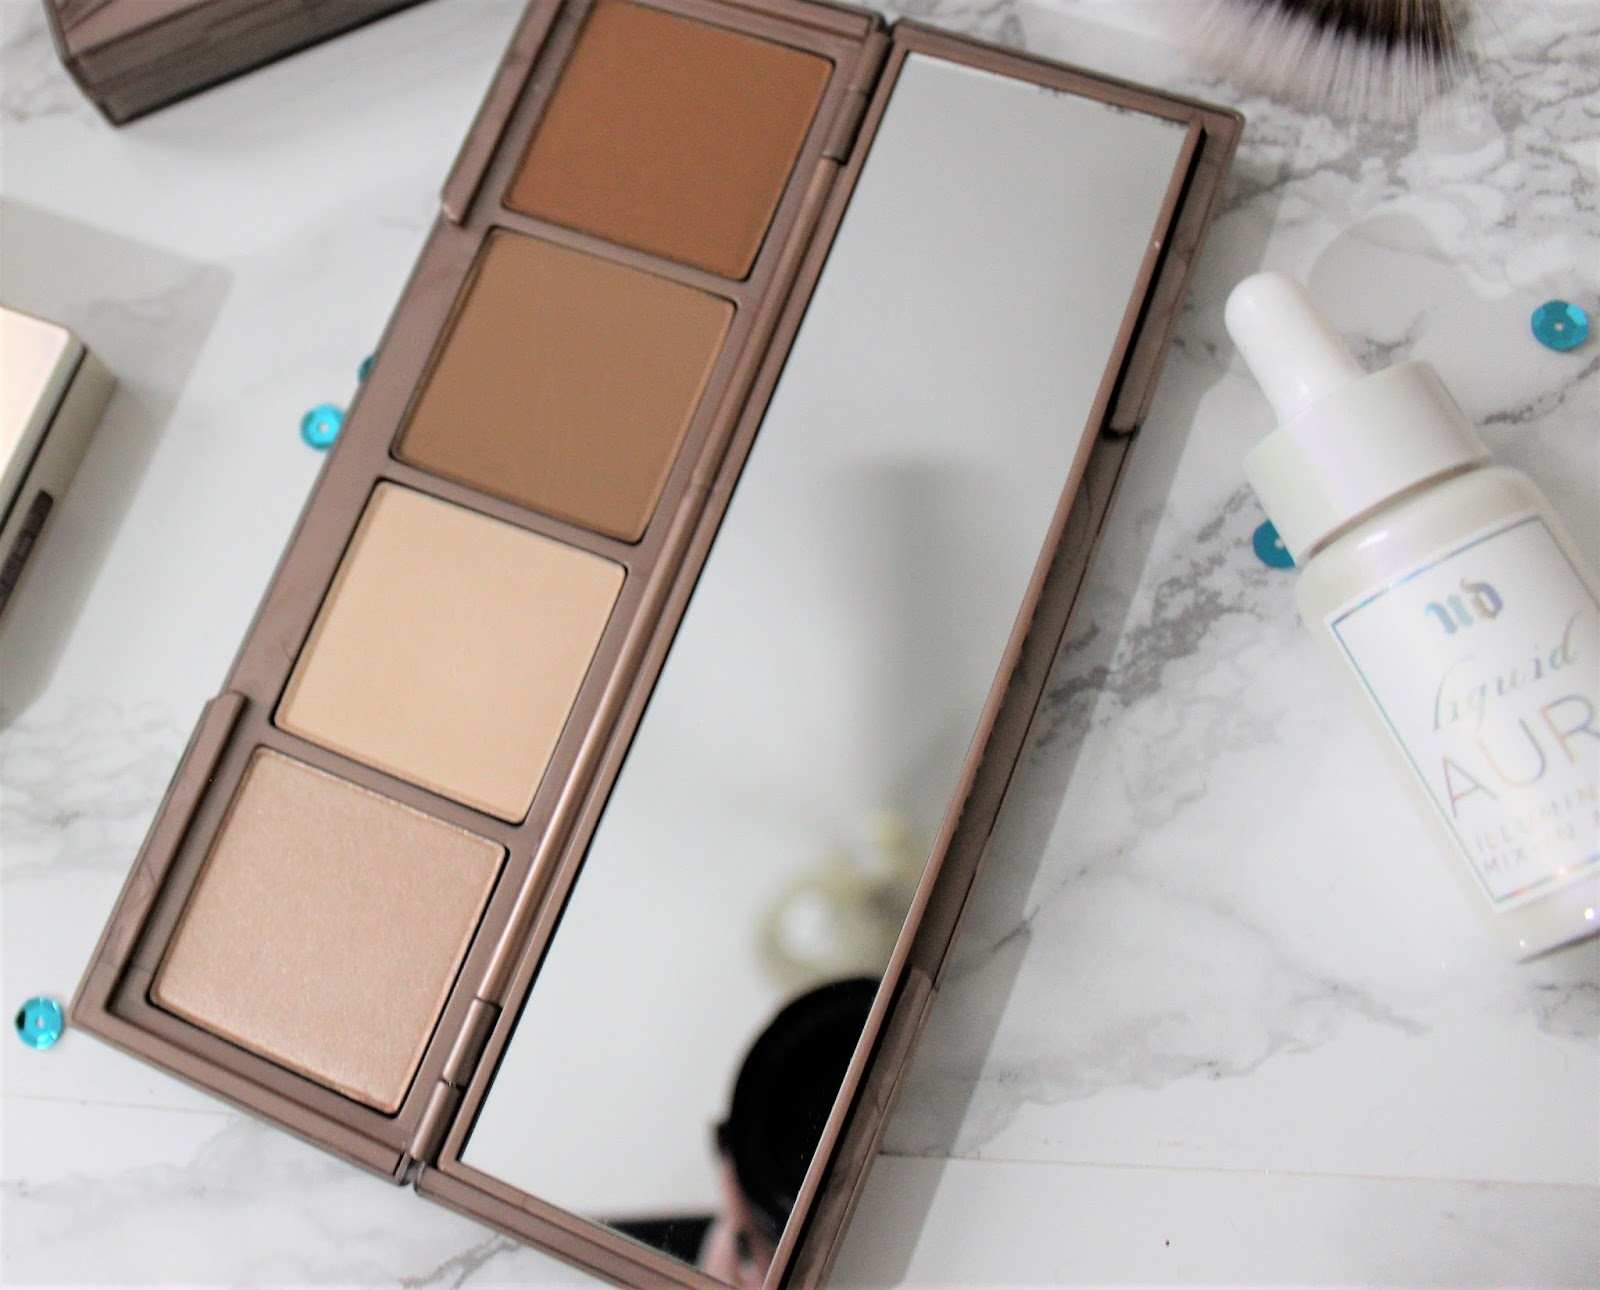 Urban Decay Naked Skin Shapeshifter Palette light